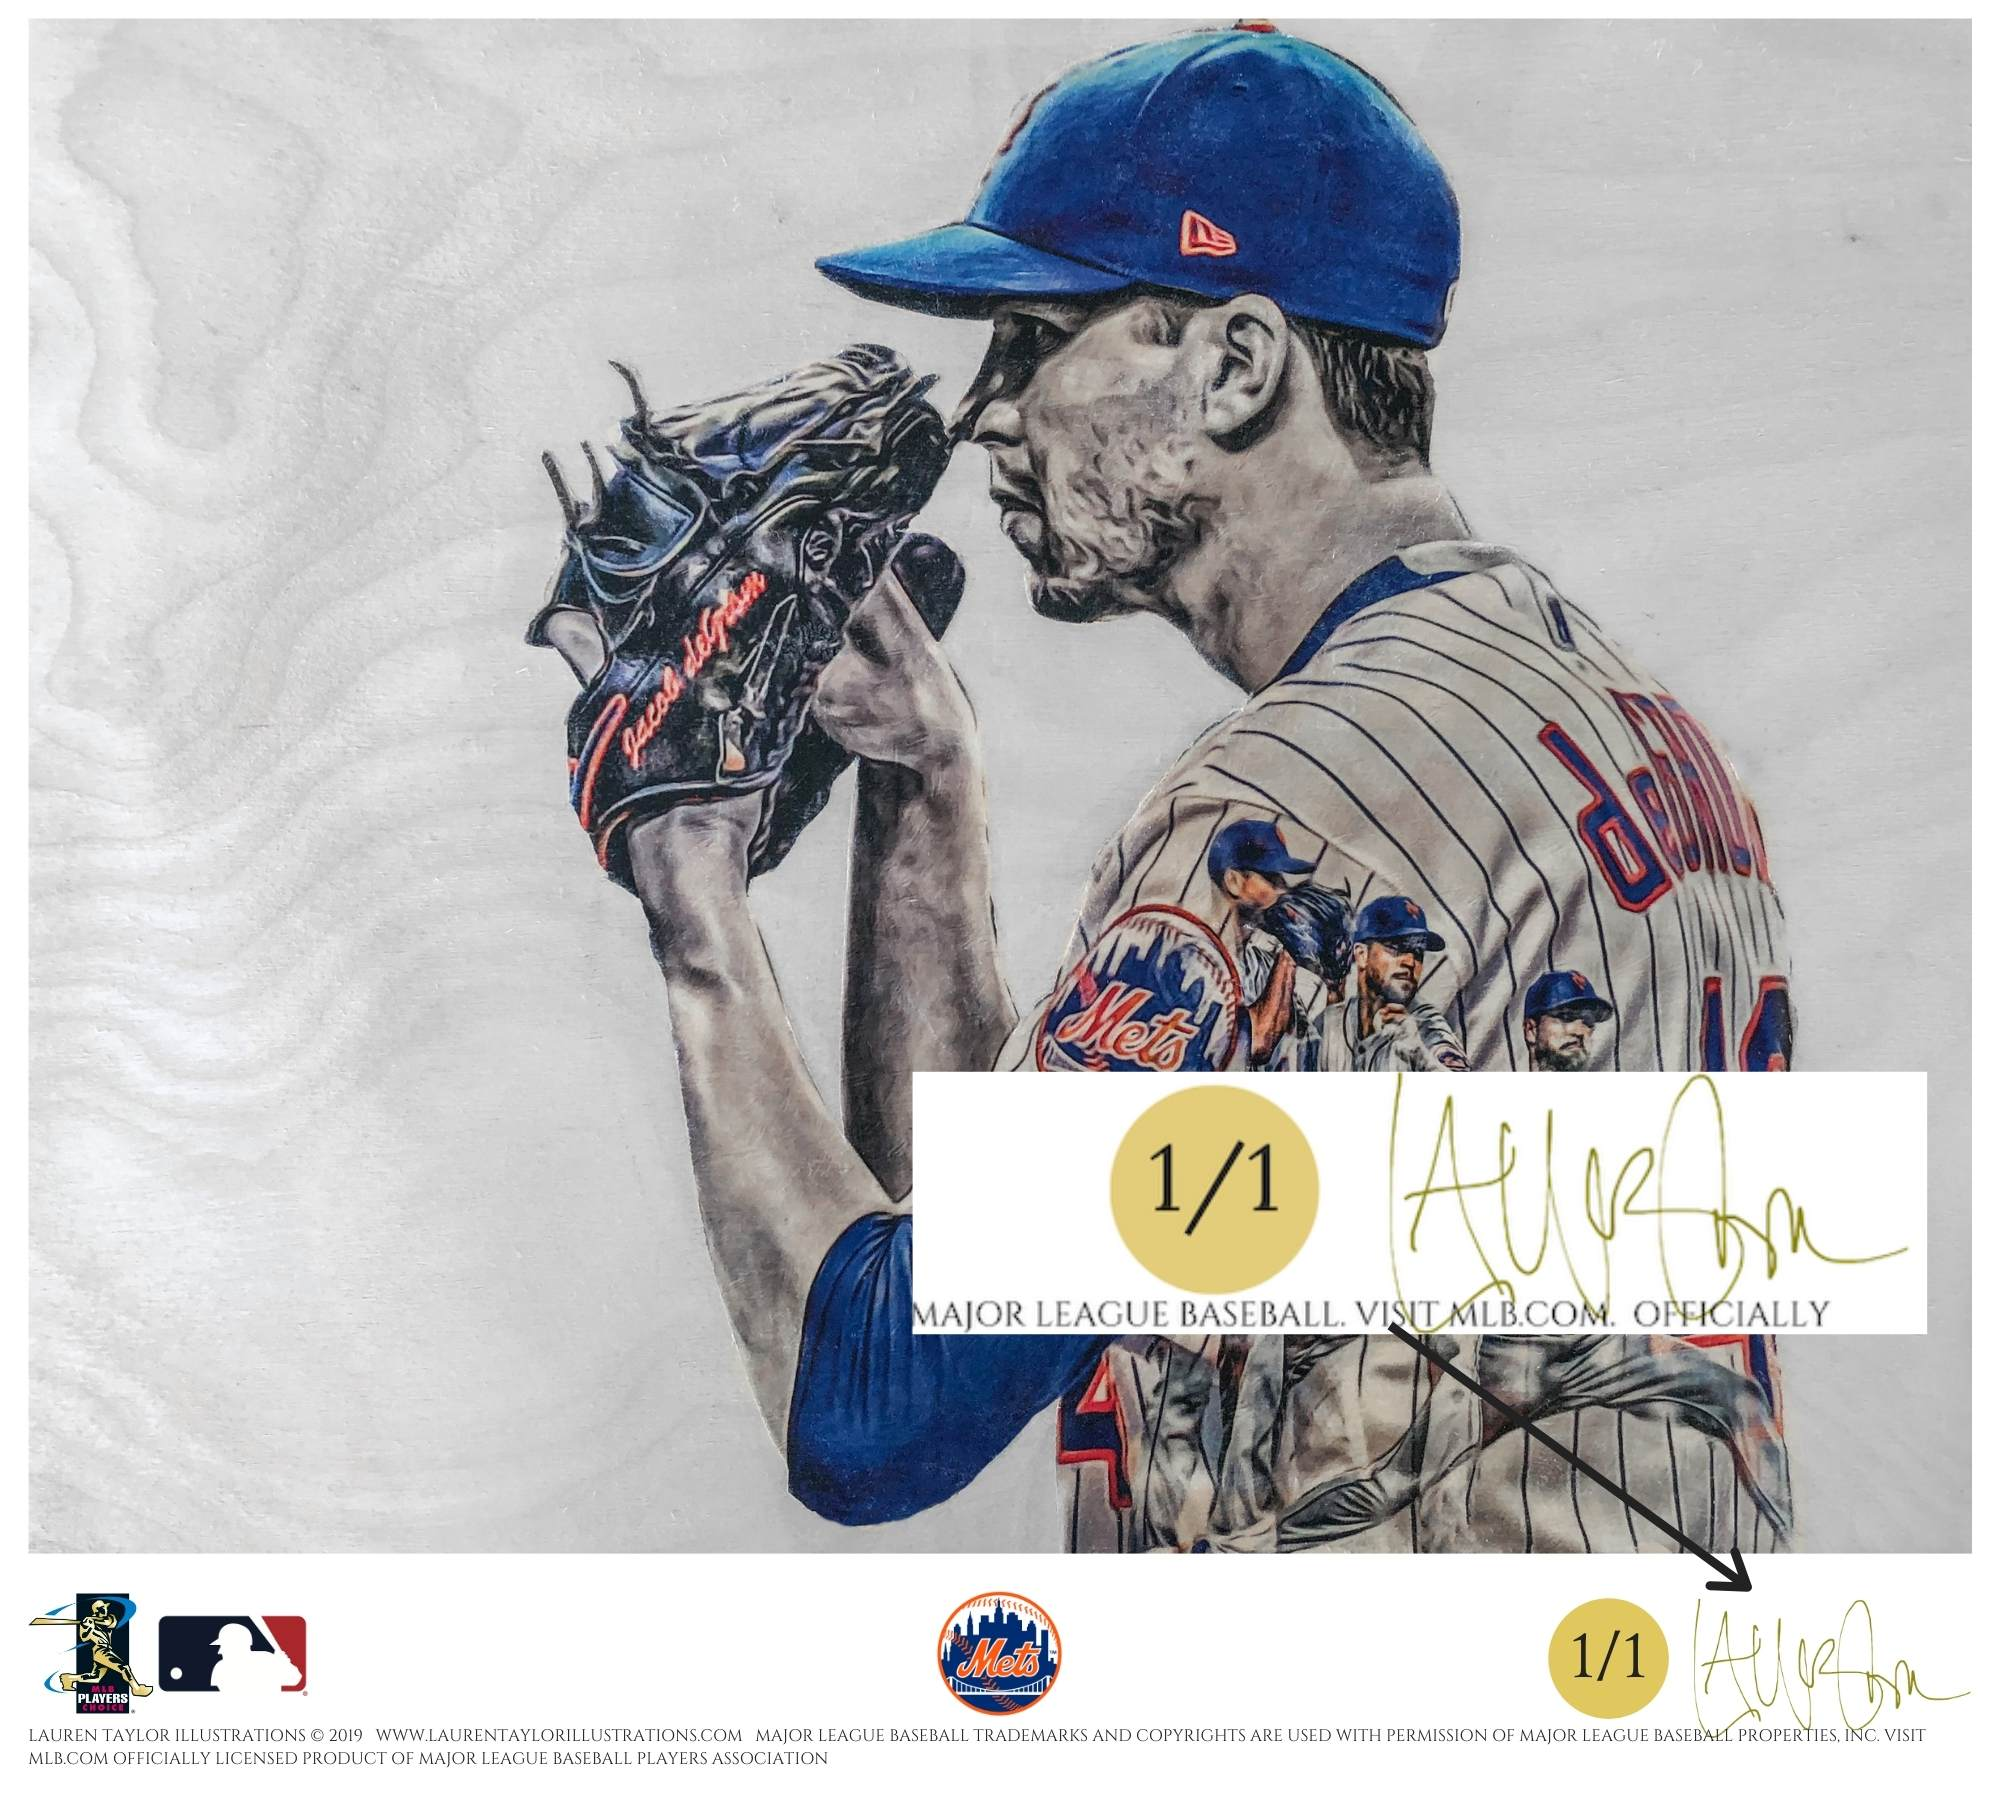 """deGrominator"" (Jacob deGrom) New York Mets - Officially Licensed MLB Print - GOLD ARTIST SIGNATURE Limited Release /1"